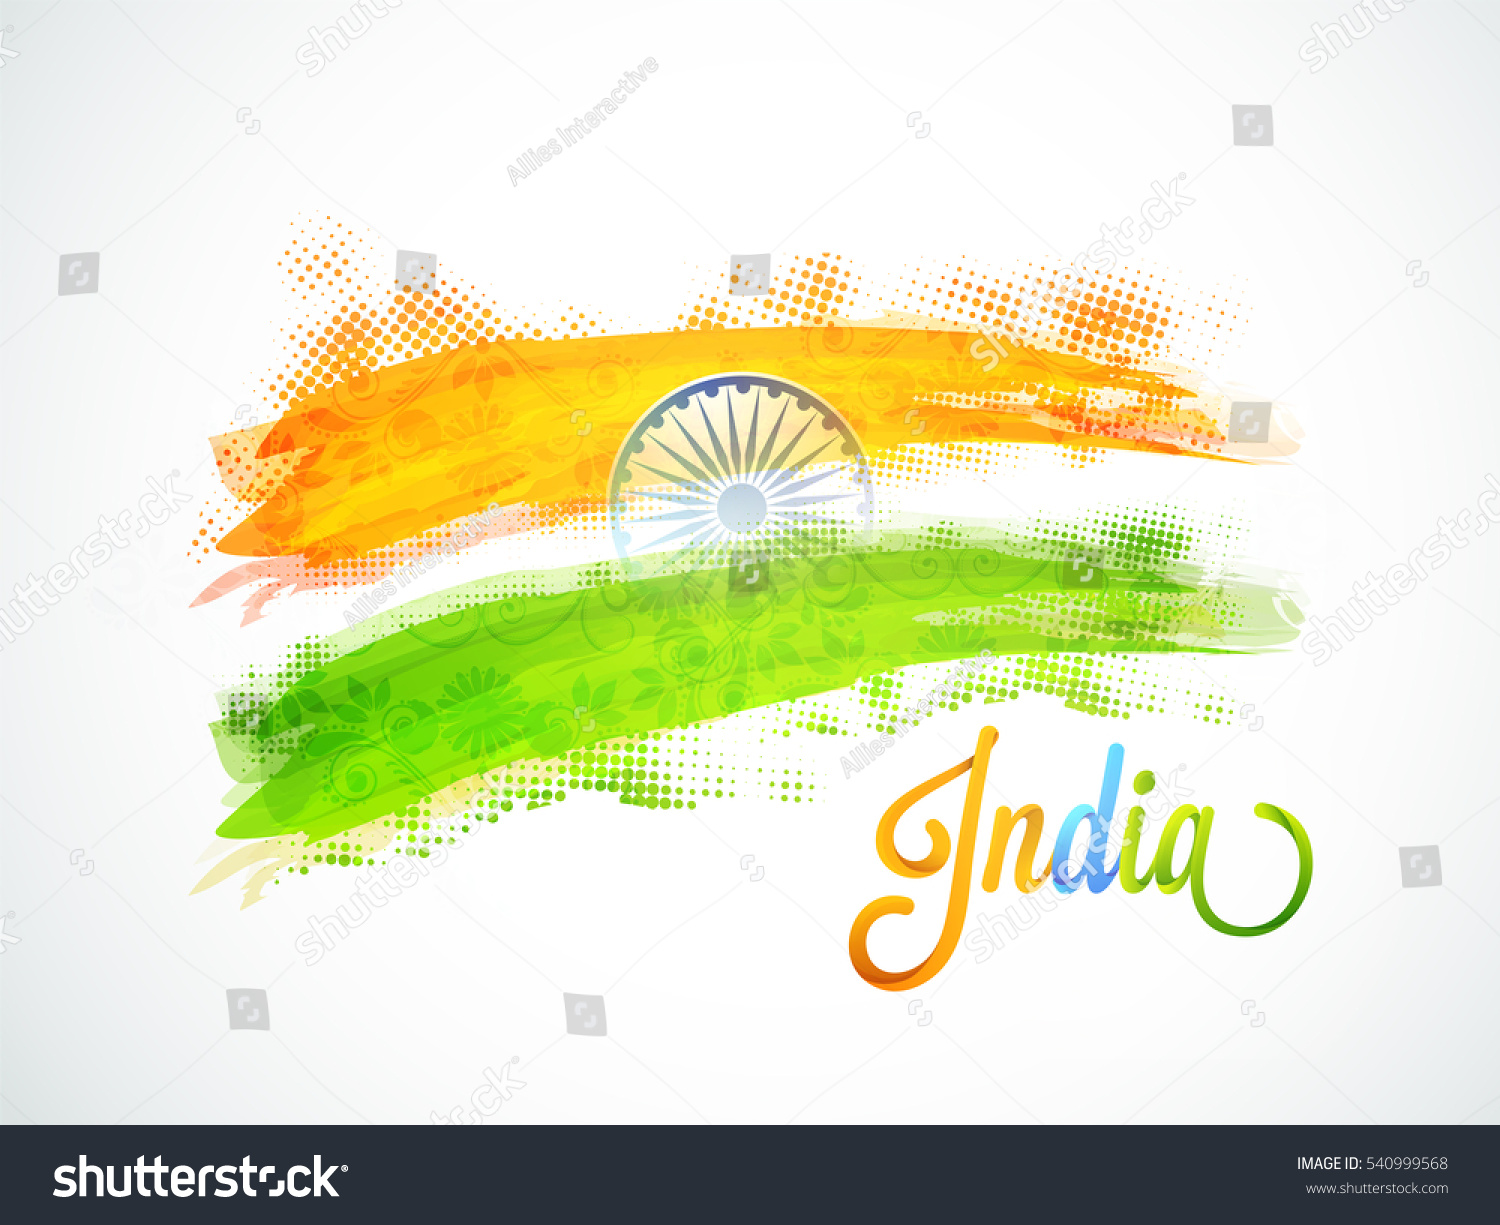 Colors website ashoka - Indian Flag Colors Brush Strokes With Ashoka Wheel Creative Poster Banner Design For Republic